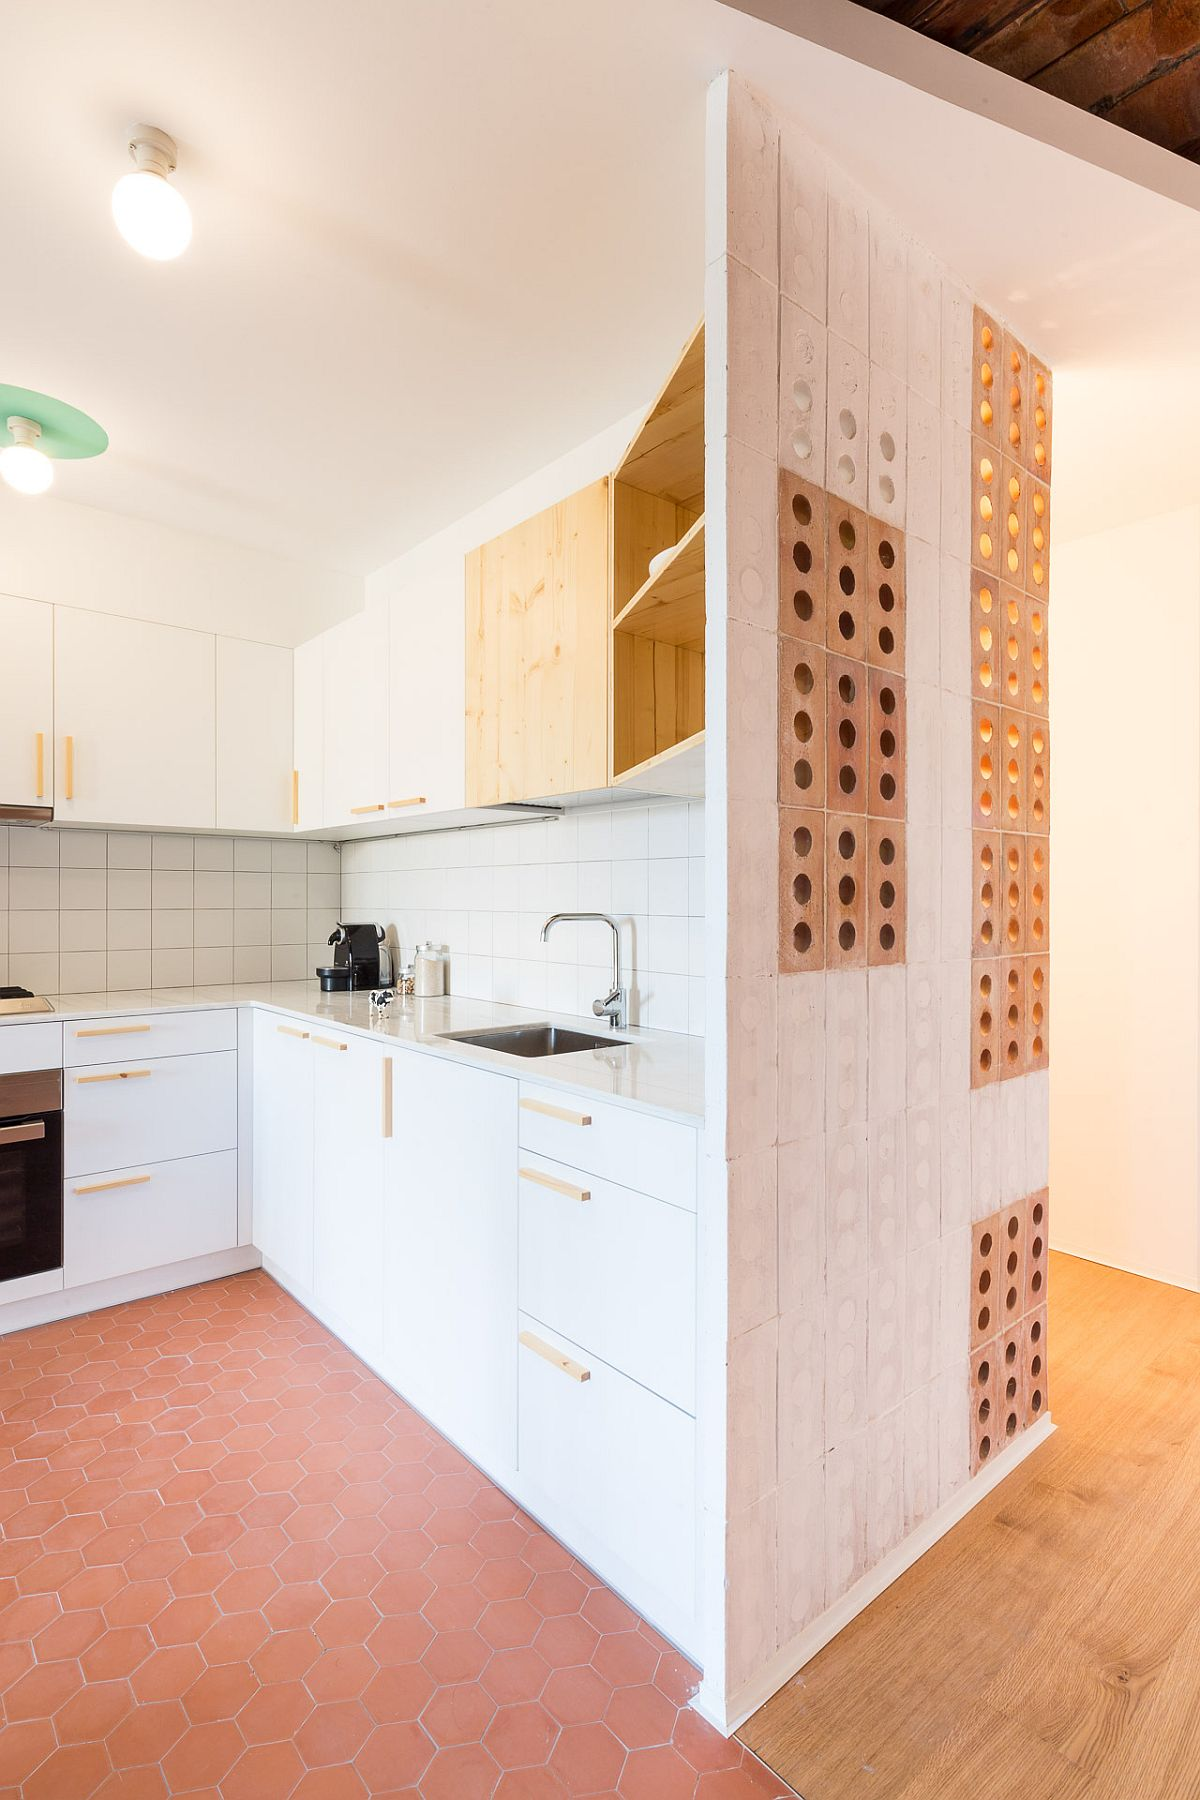 White and wood kitchen of the apartment with hexagonal floor tiles